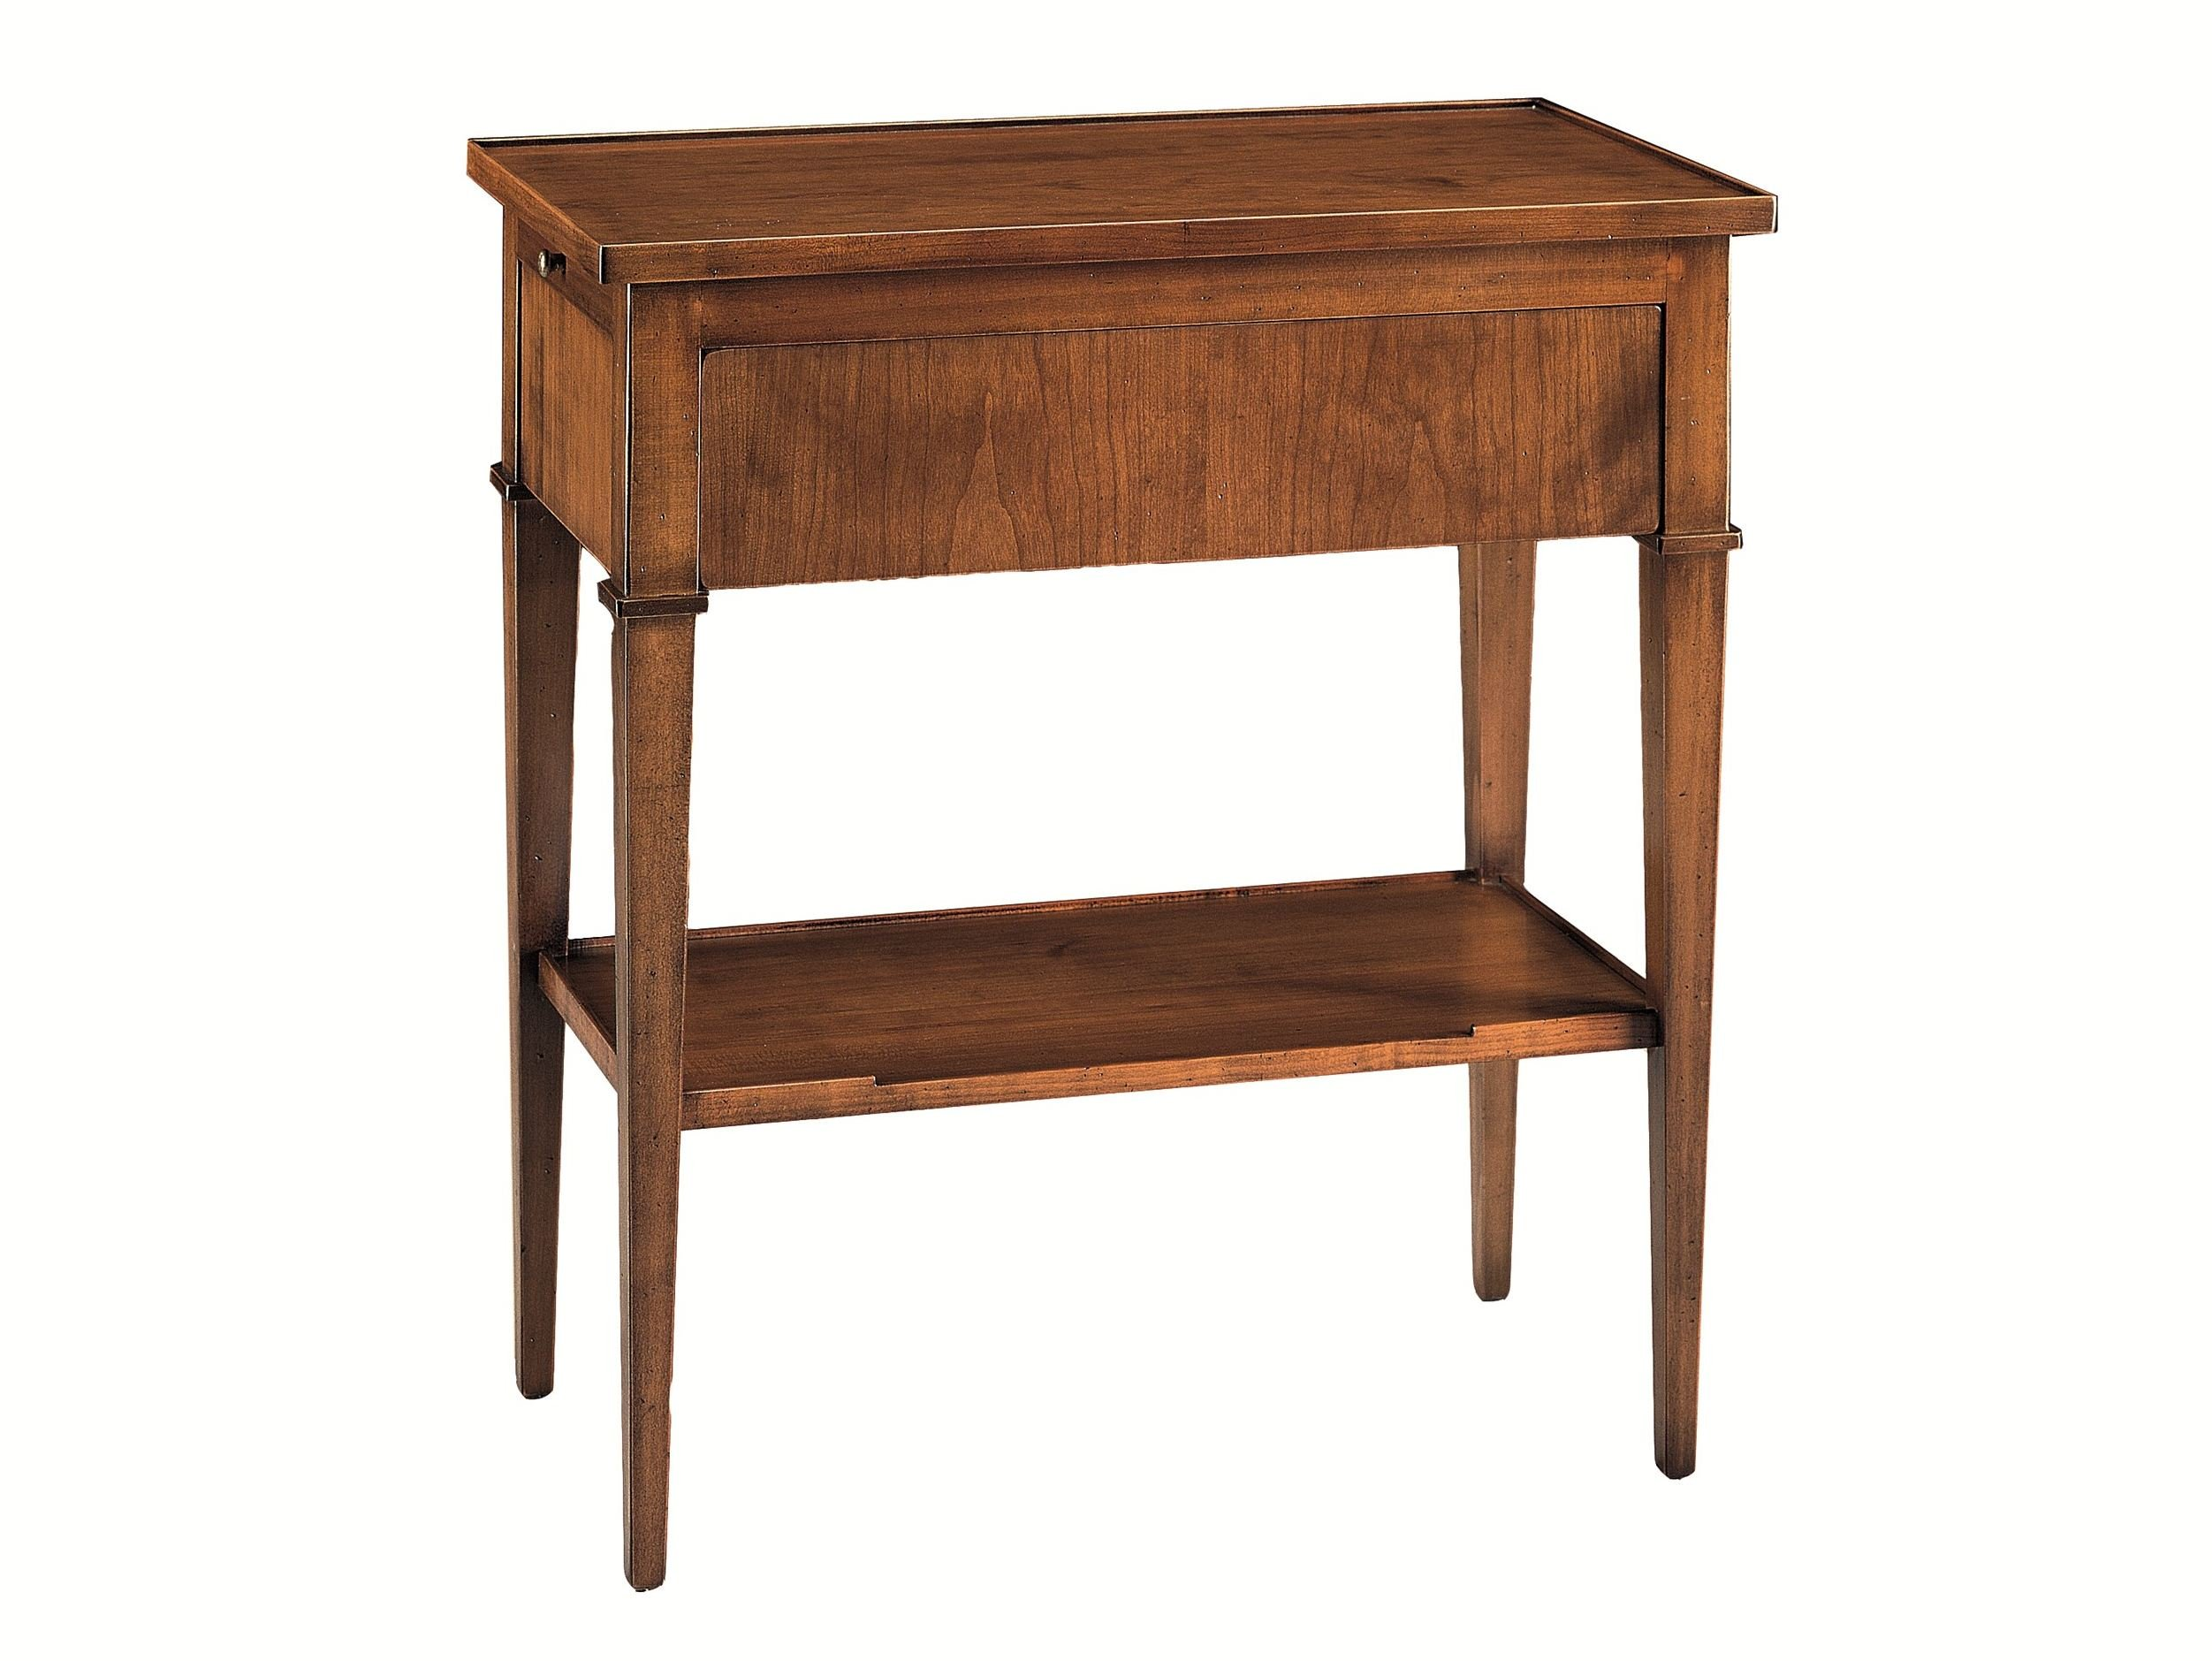 Marvelous photograph of Cherry wood console table with drawers BIEDERMEIER Console table  with #999932 color and 2503x1879 pixels